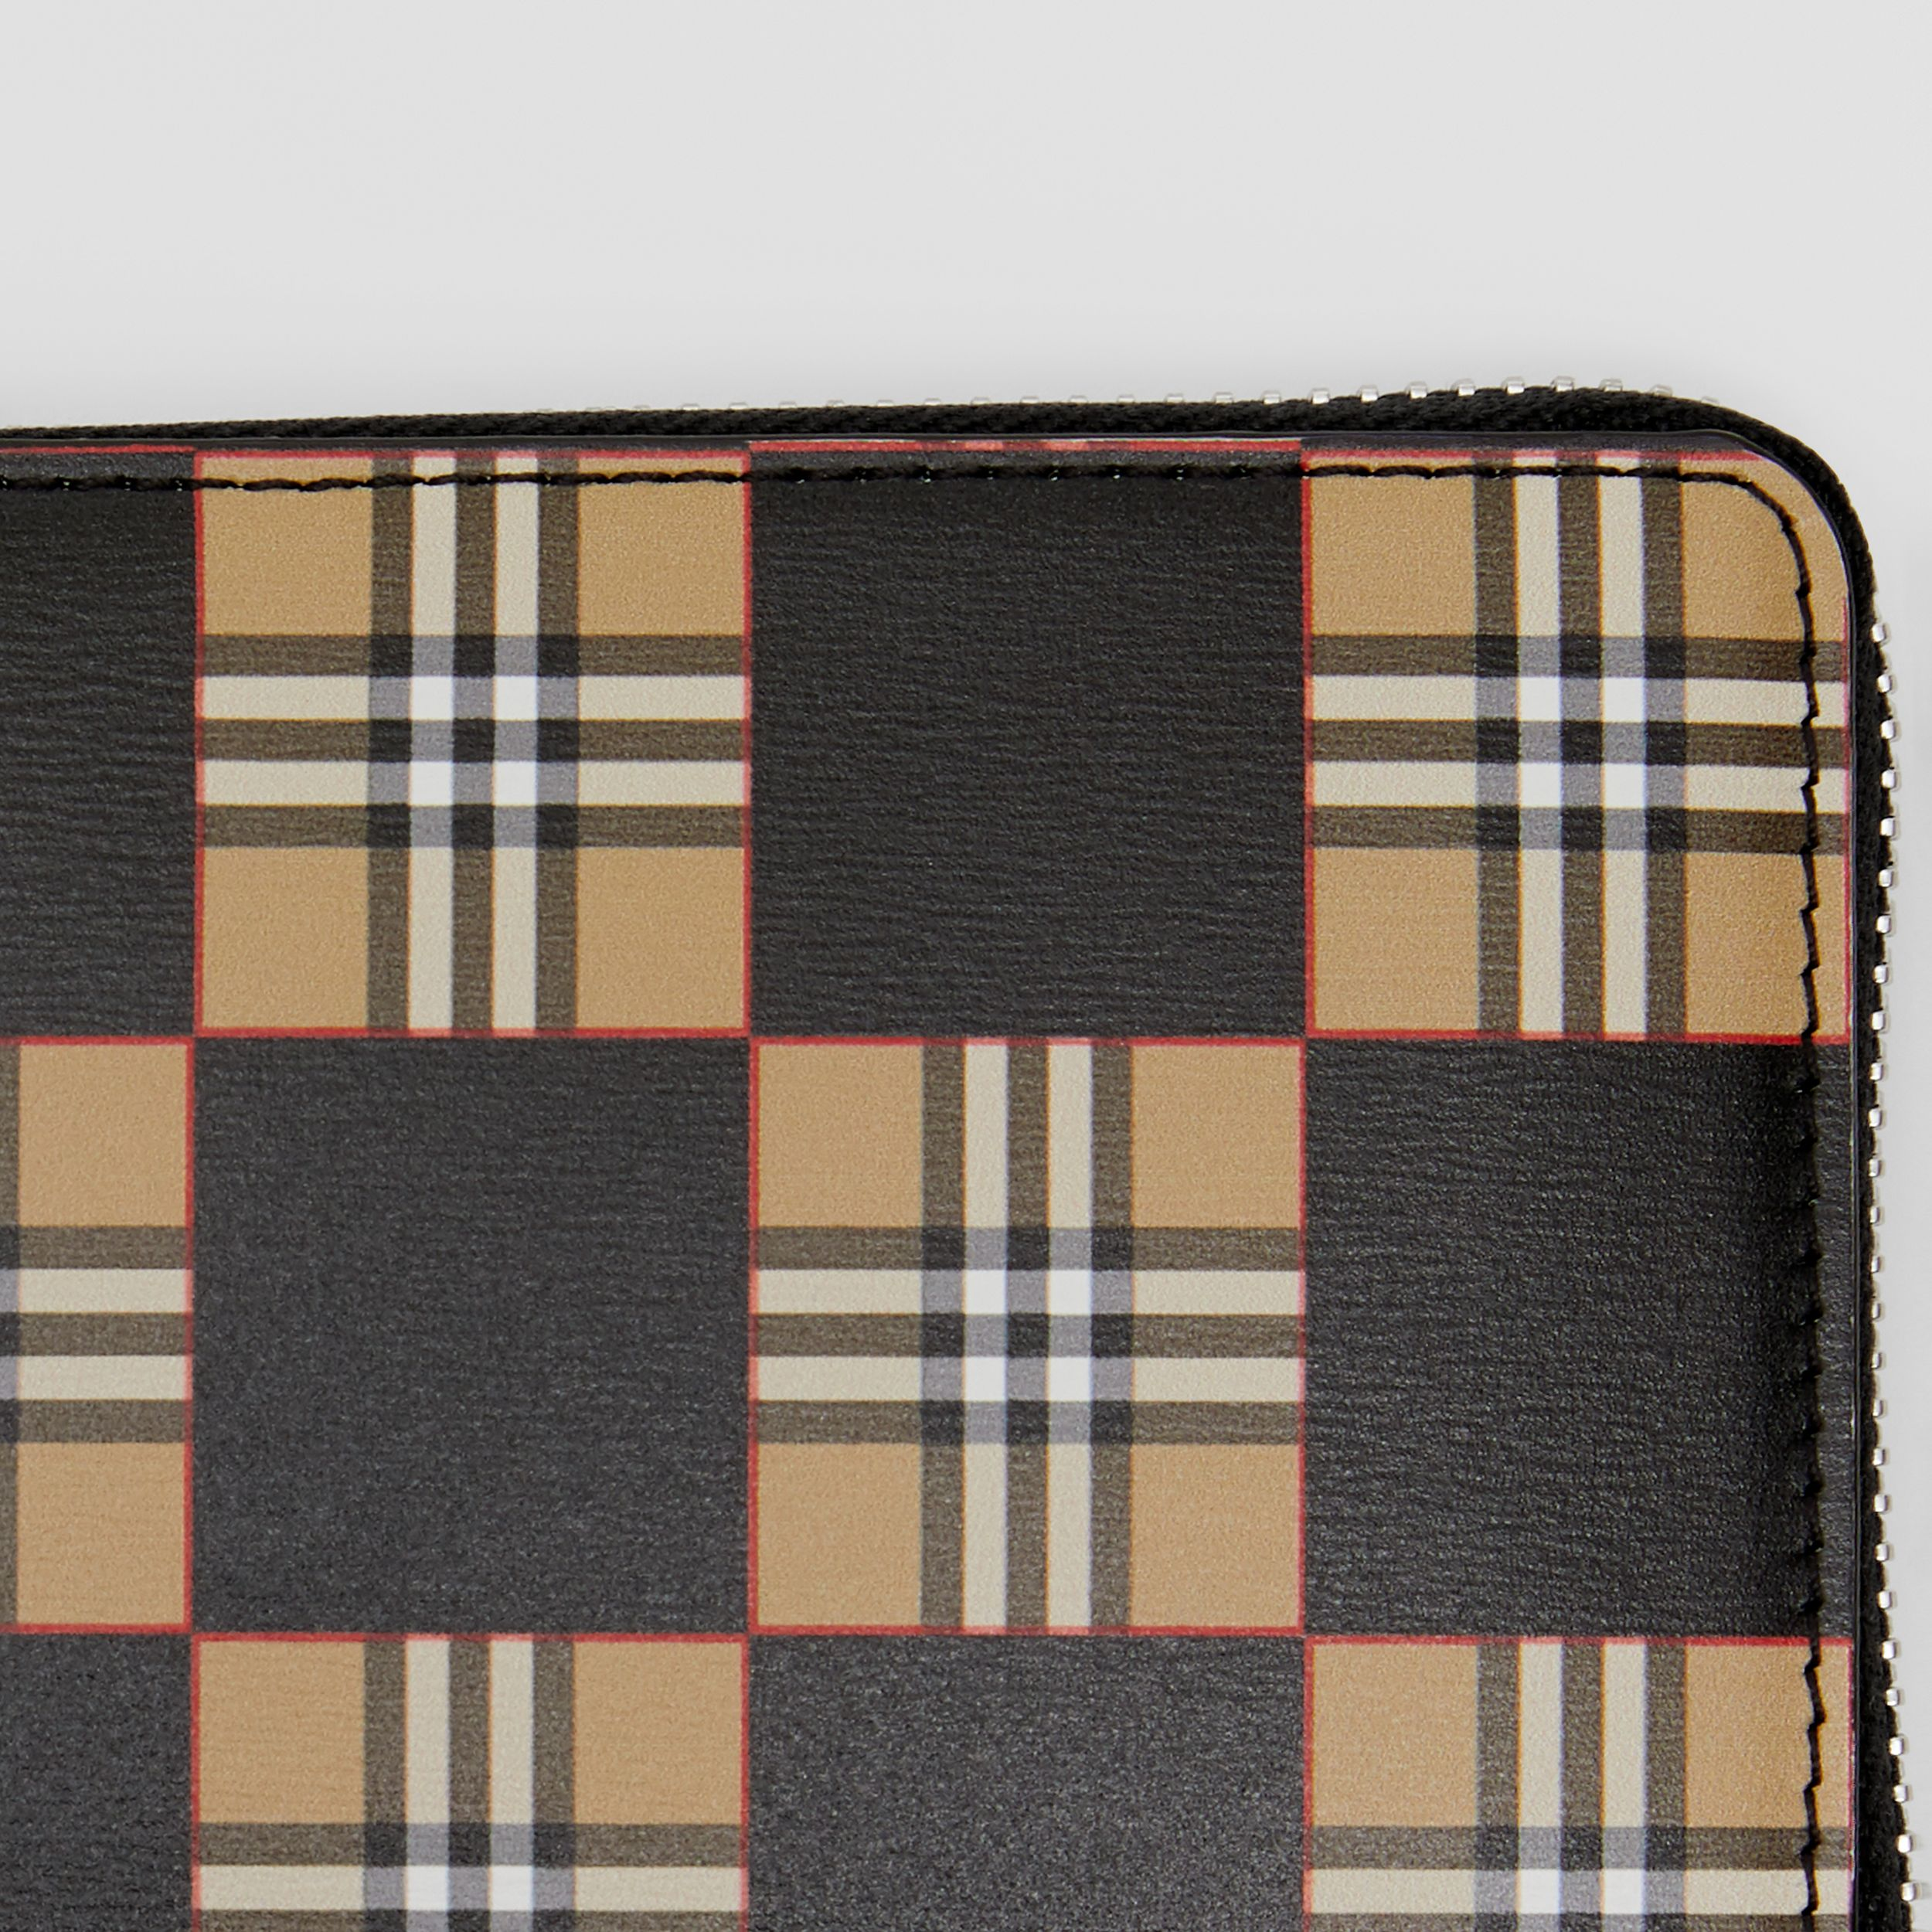 Chequer Print Leather Ziparound Wallet in Archive Beige/black - Men | Burberry - 2